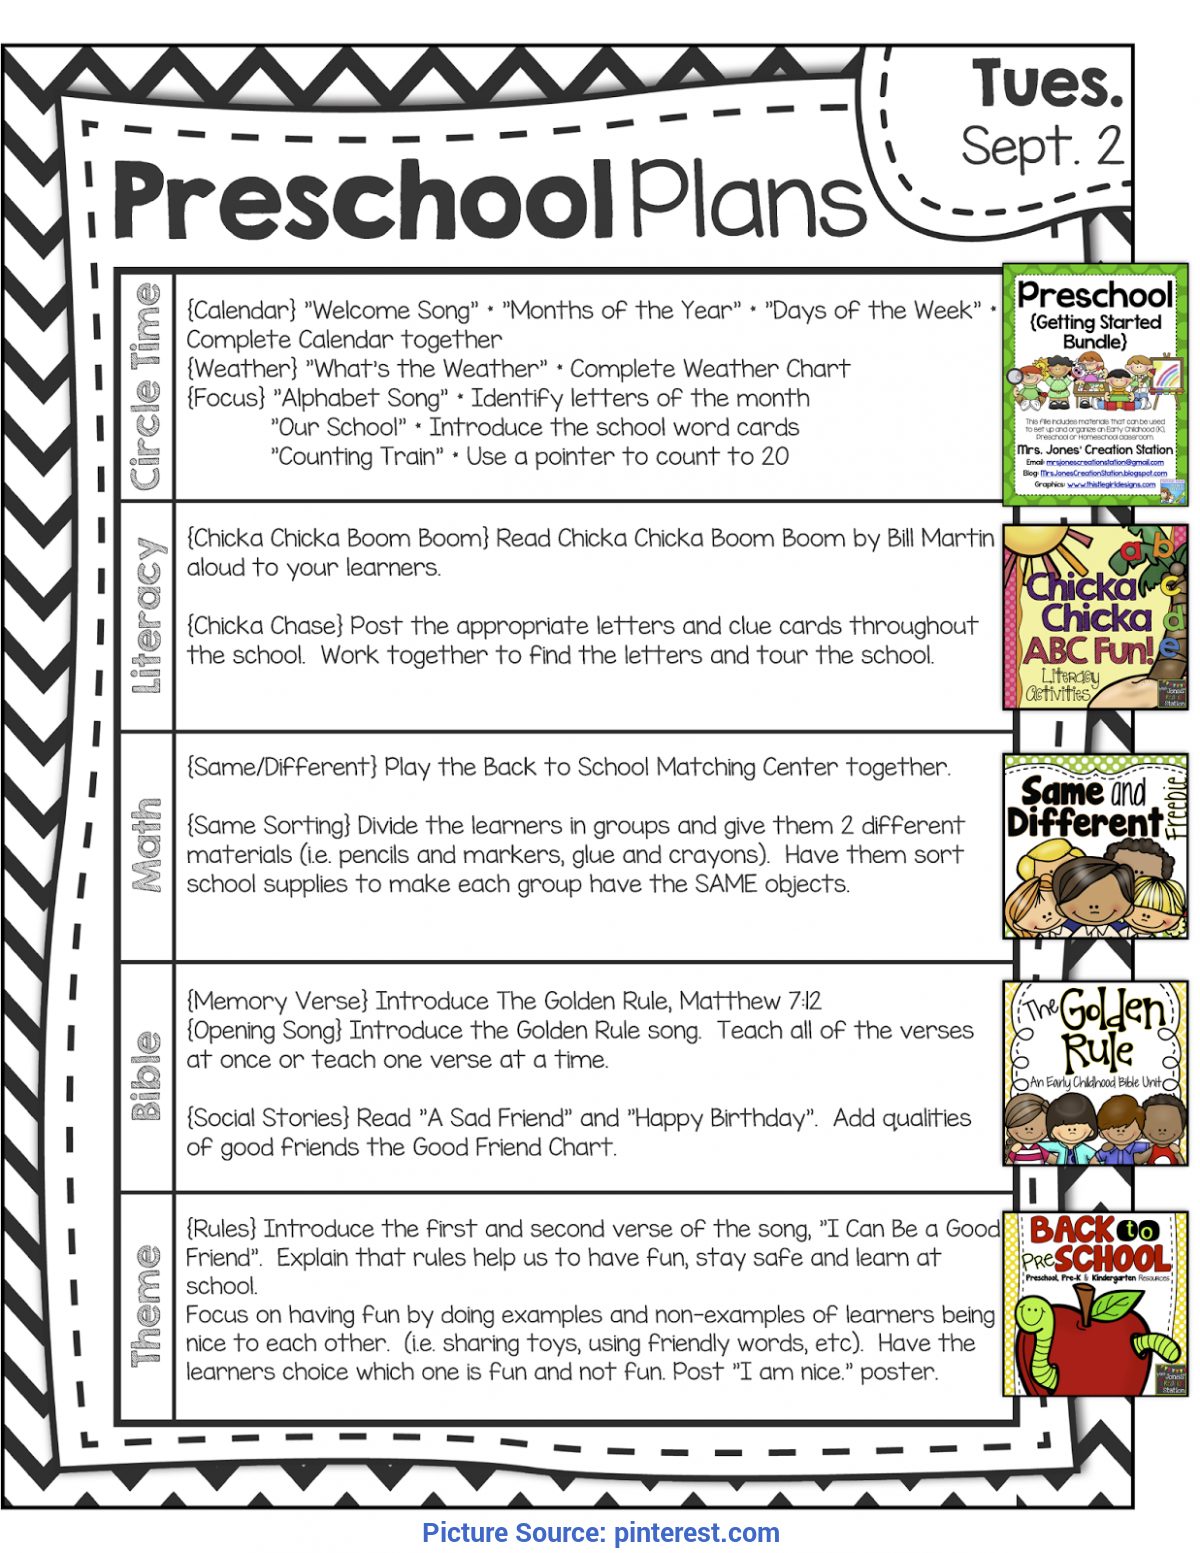 Unusual Lesson Plans For Preschool First Day Of School Peek At My Week * Back To Pre-School | Lesson Plan Templates, Pr